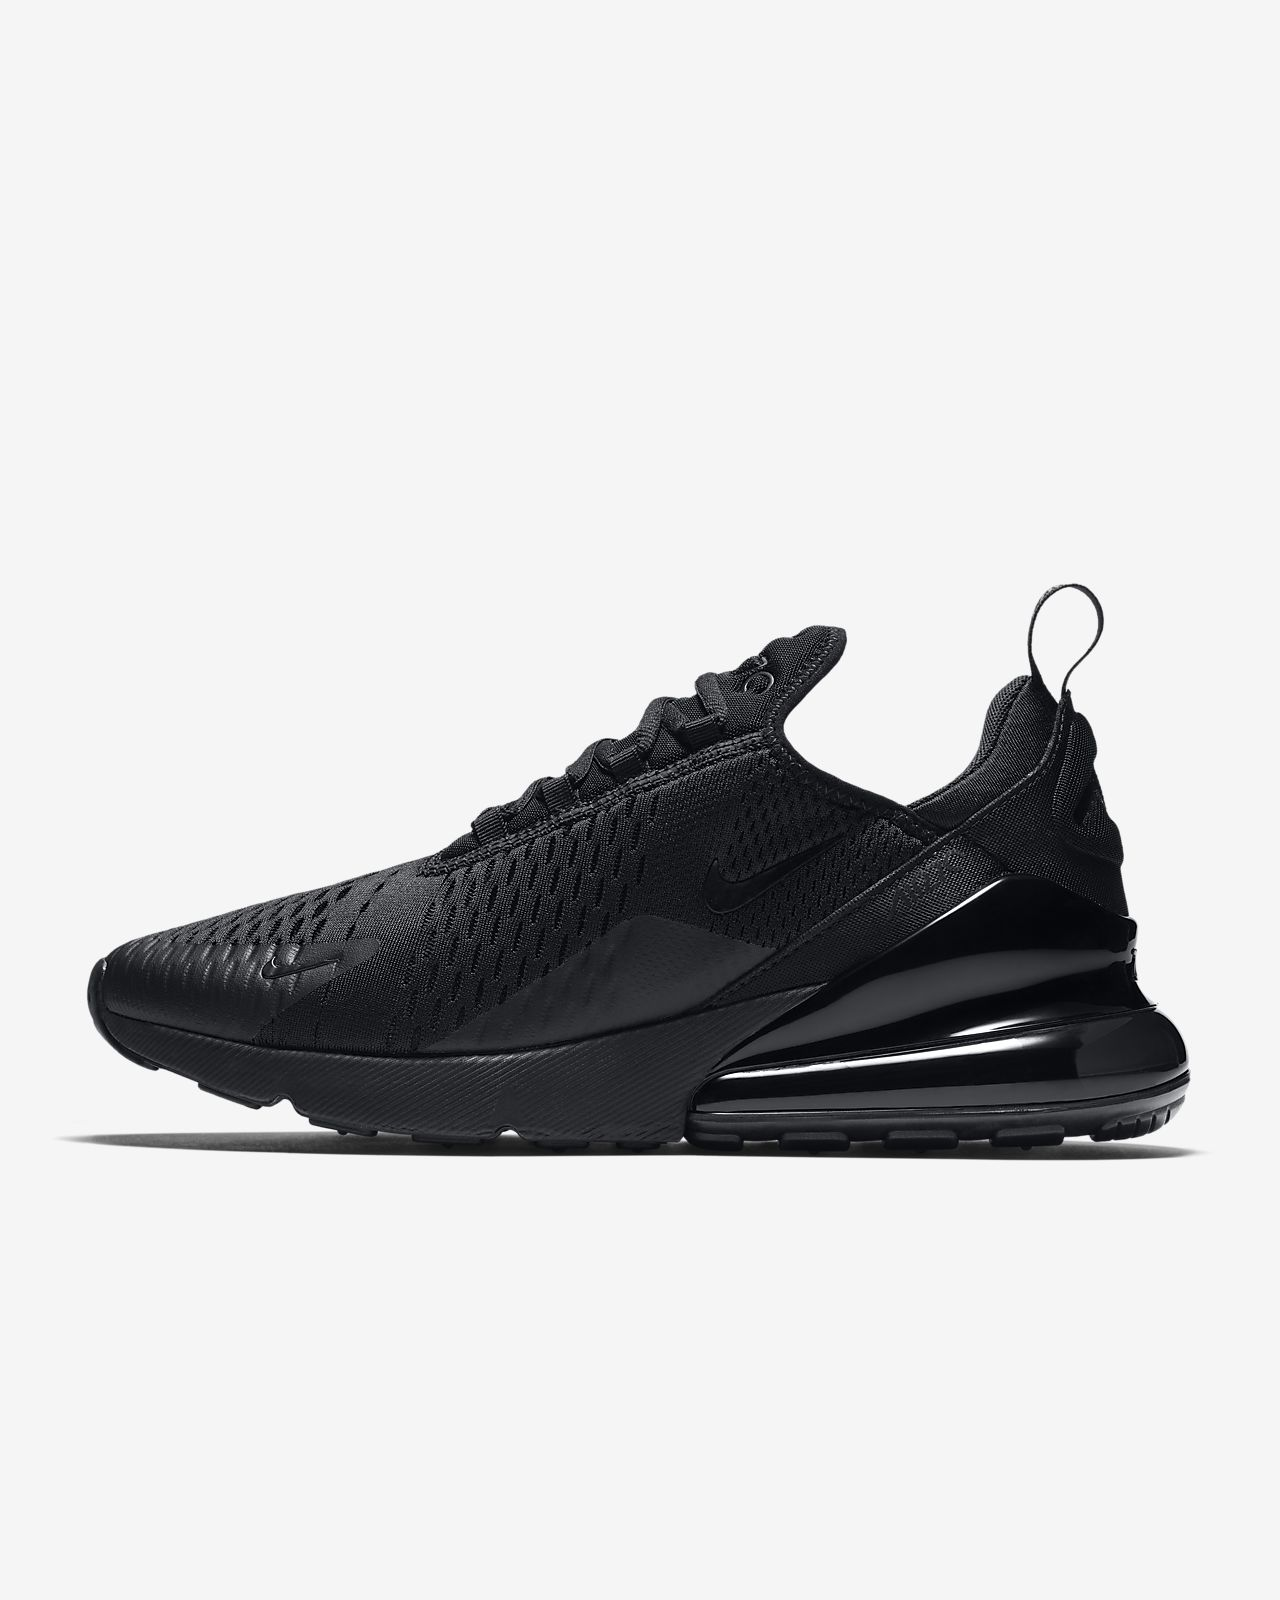 2018 New Releases Nike Air Max 270 KPU | Mens Jogging Shoes